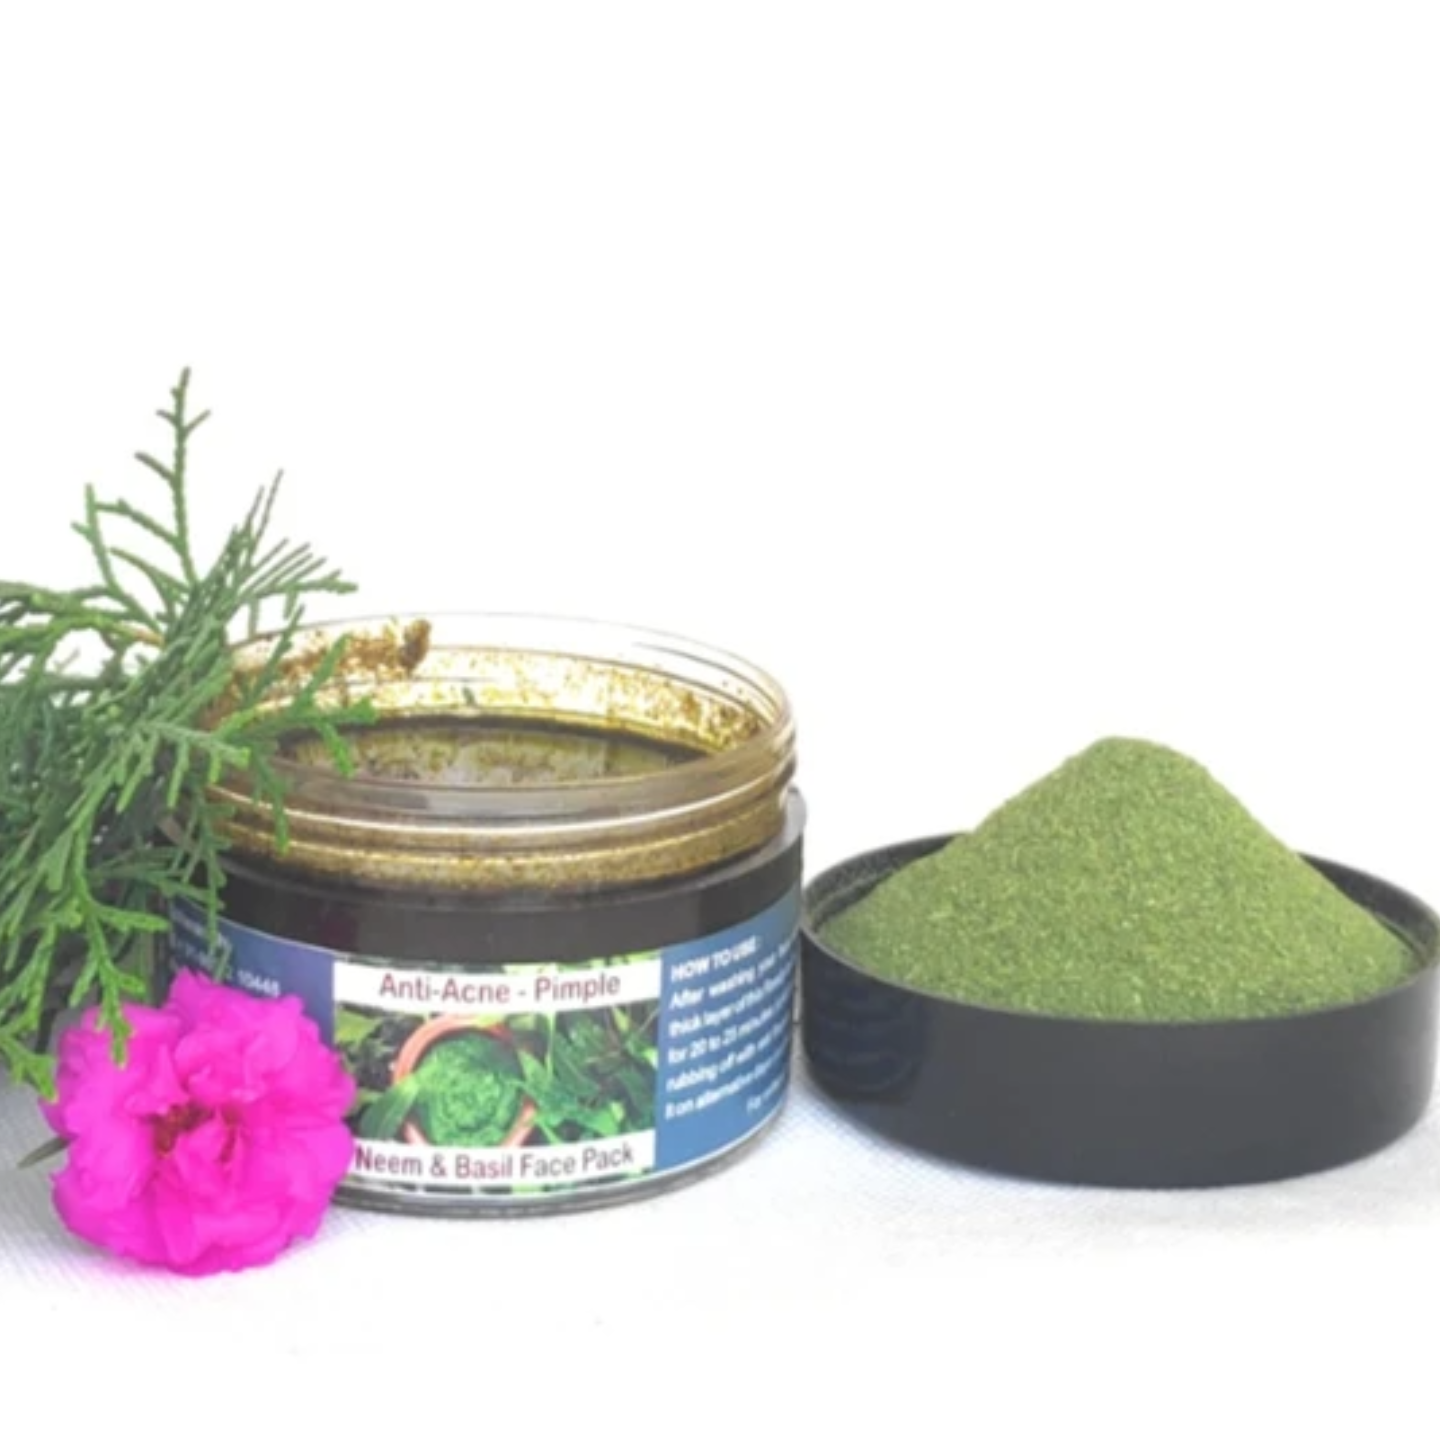 Neem & Basil Anti Acne-Pimple Ready to Use Face Pack